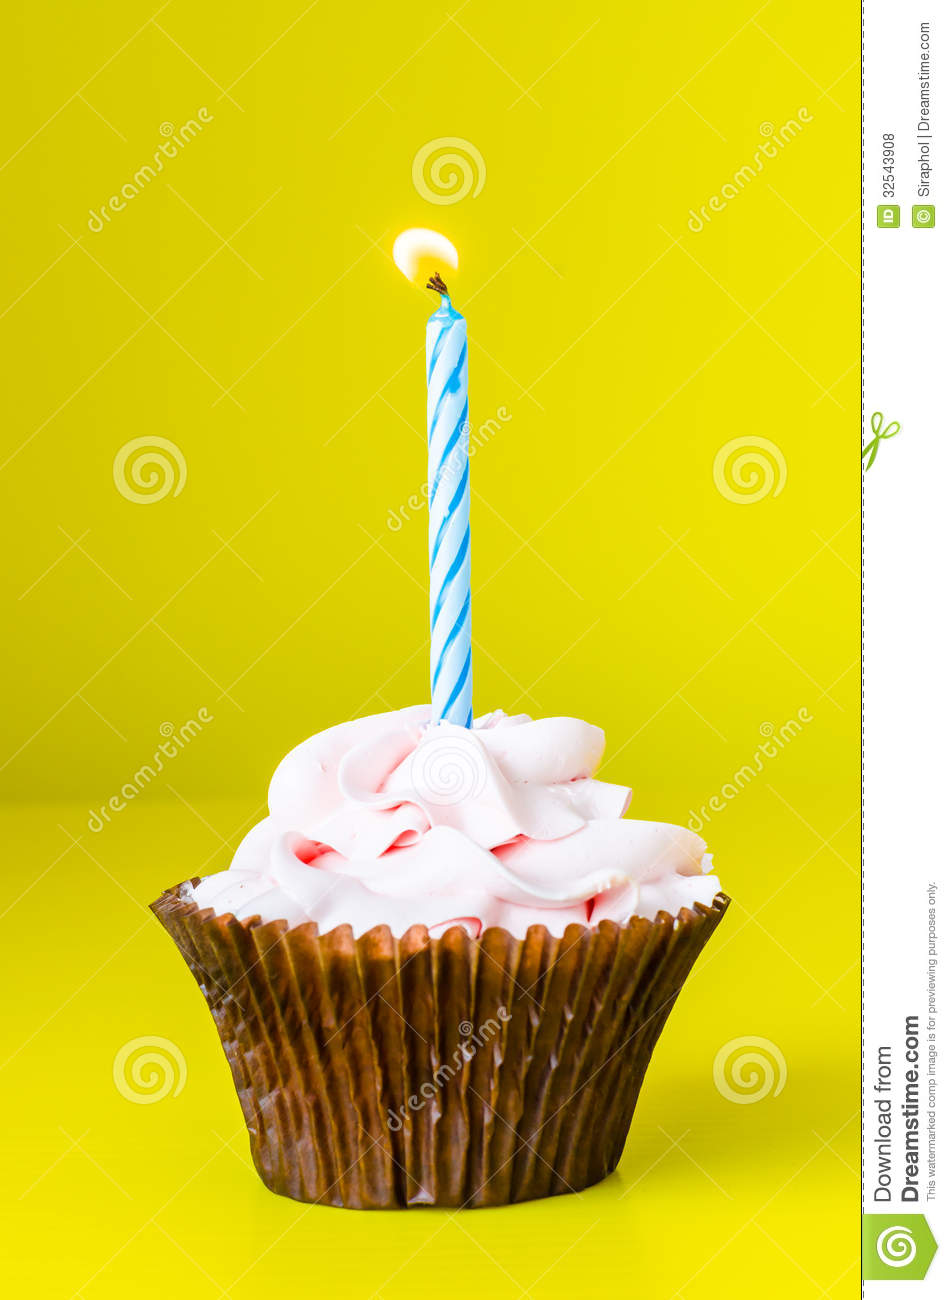 cupcake with candle royalty free stock photos image